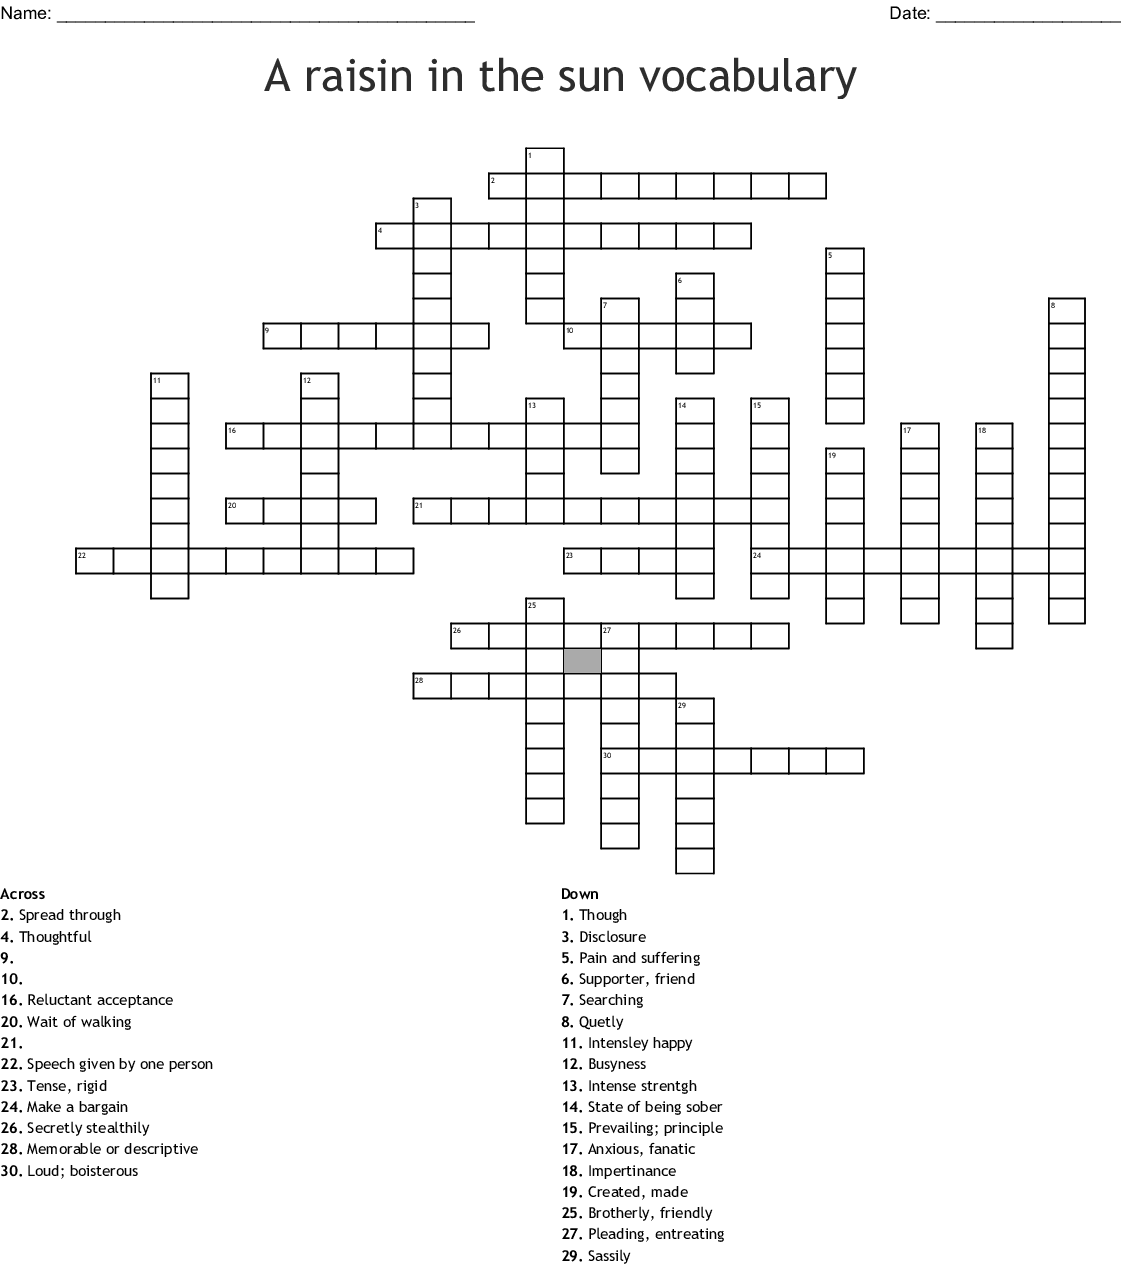 A Raisin In The Sun Vocabulary Crossword